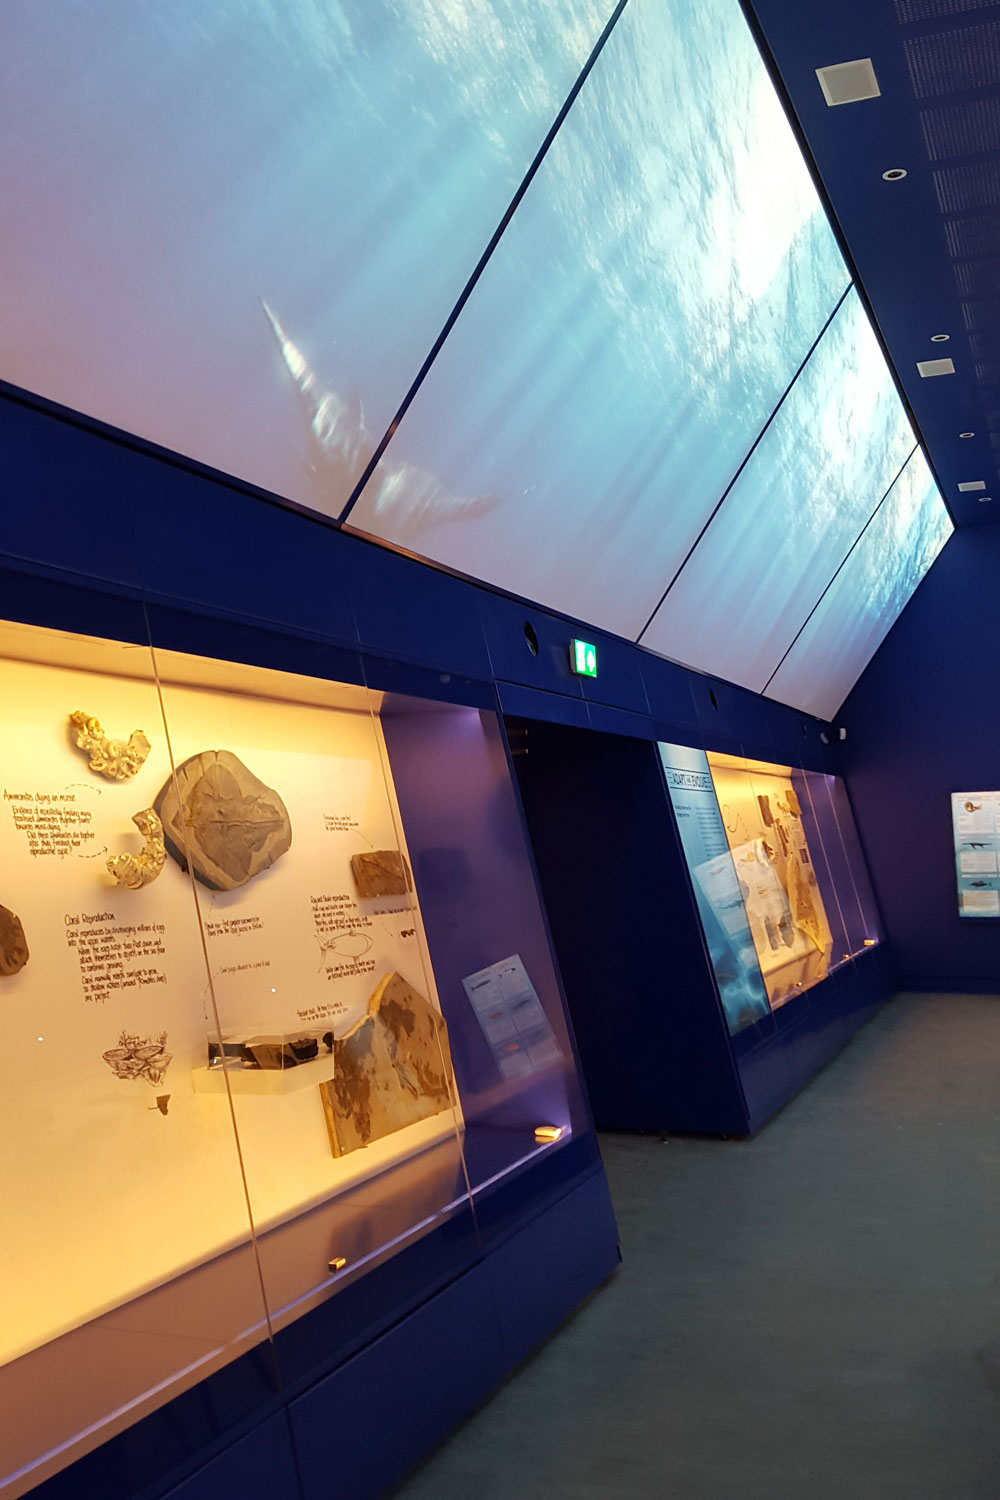 Huge format video sits above fossils in display cases in the Etches Collection exhibition